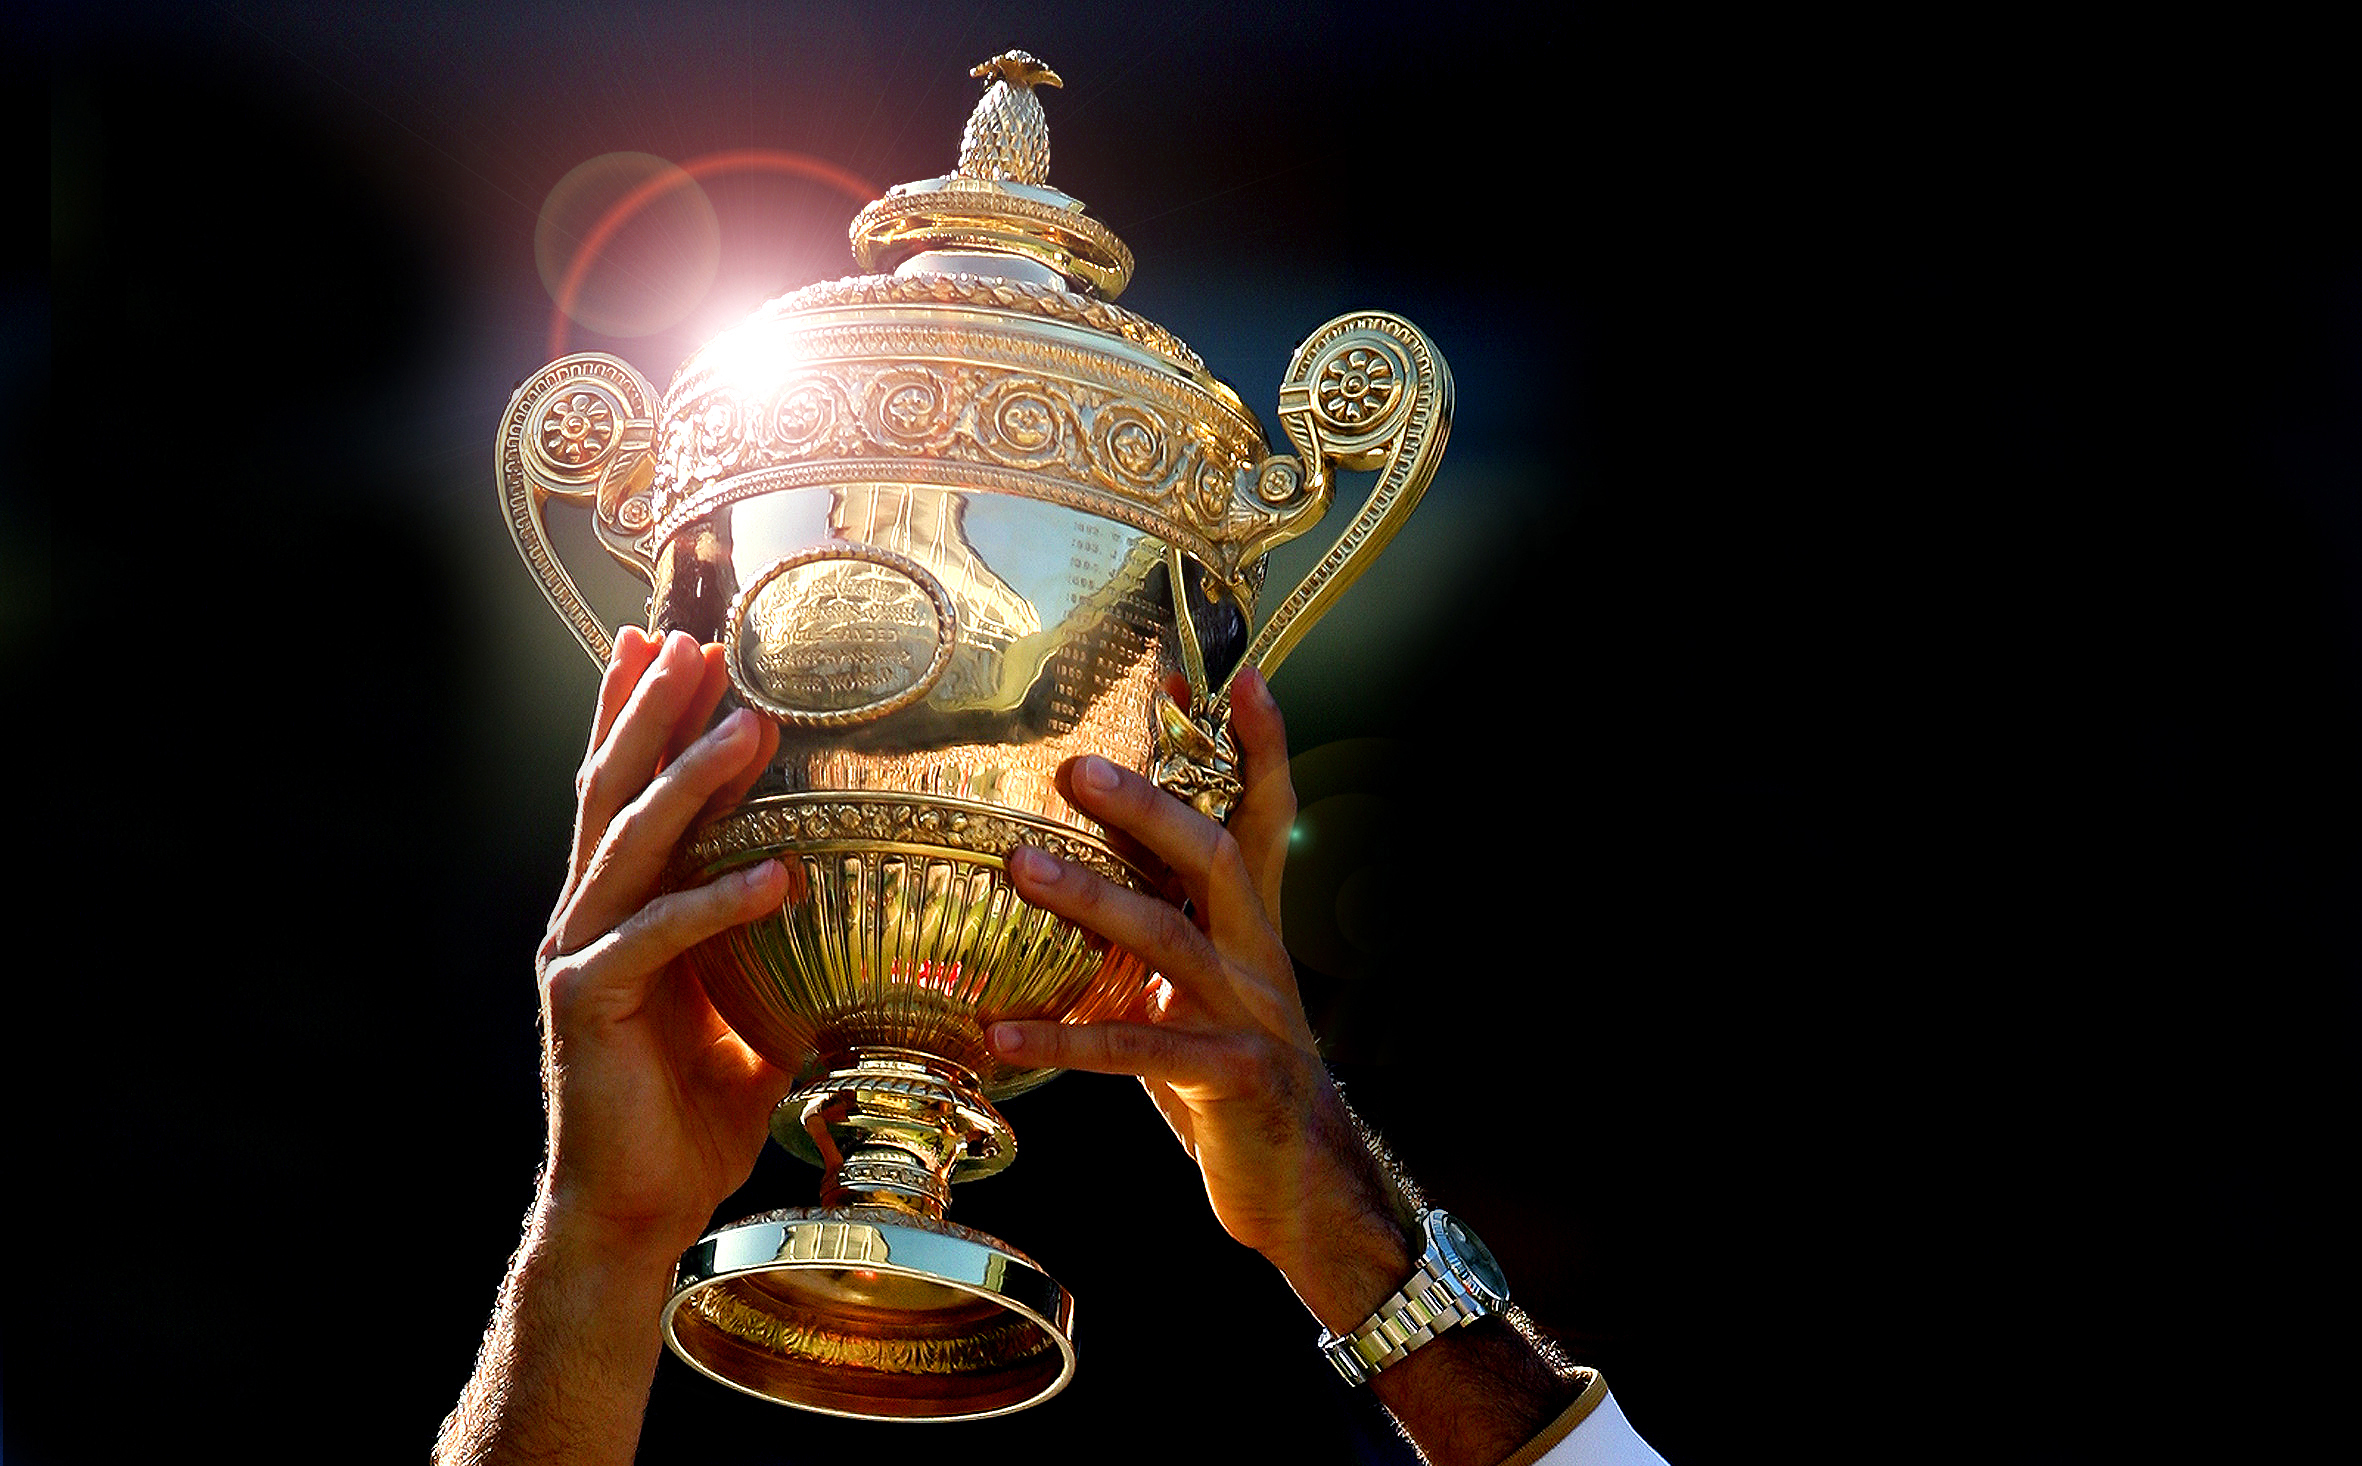 Experience Wimbledon as the Grand Slam Champion